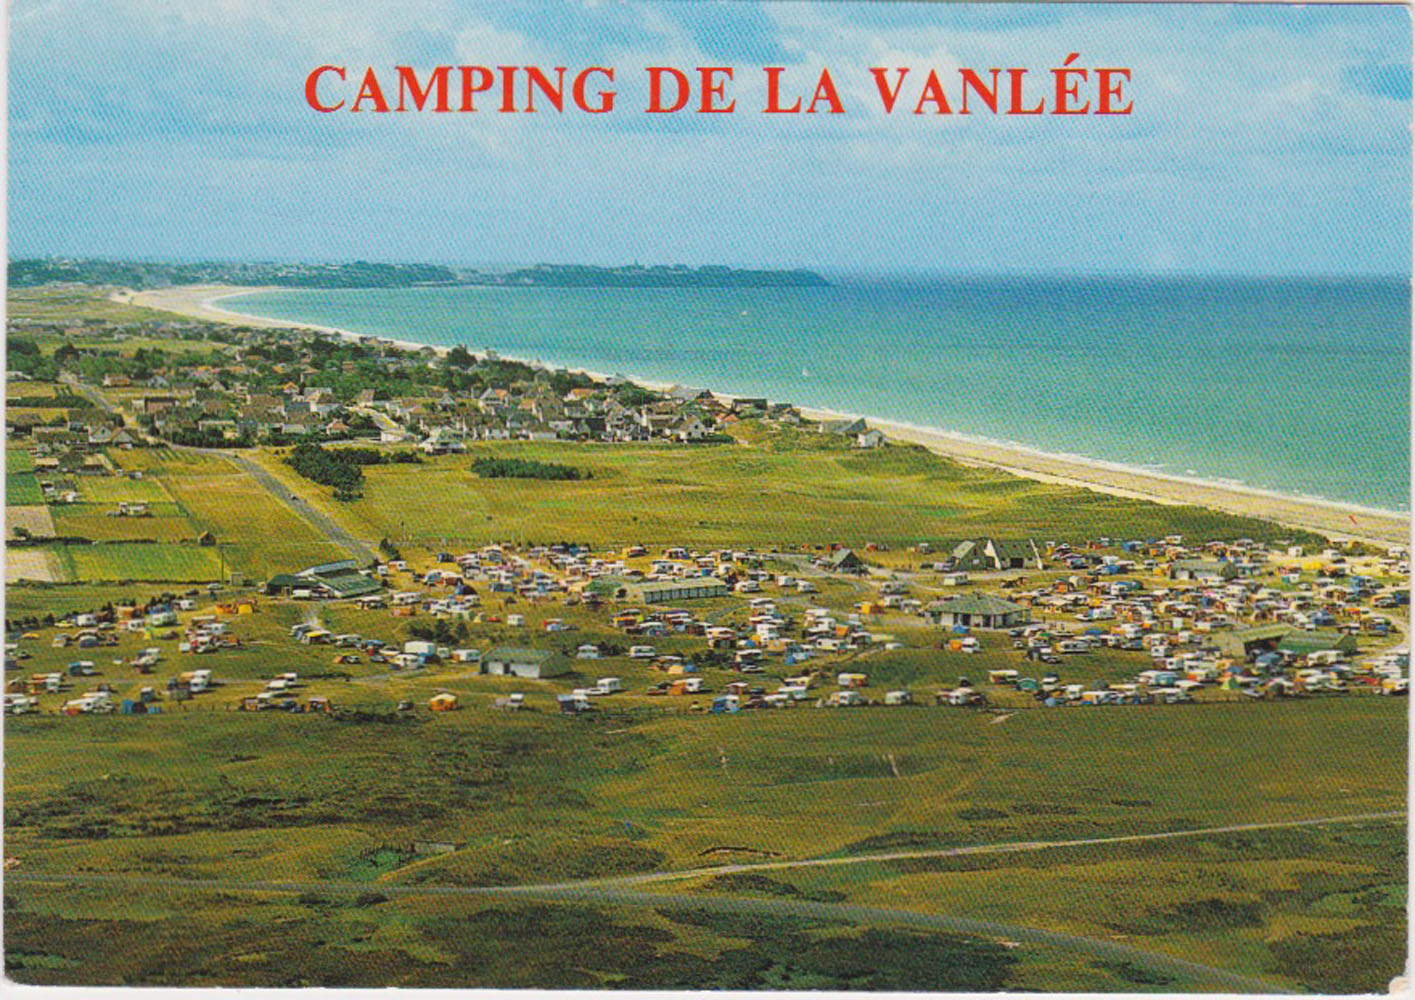 1972 St Martin Vue aérienne Camping Vanlée 2 © collection Jean Claude (...)